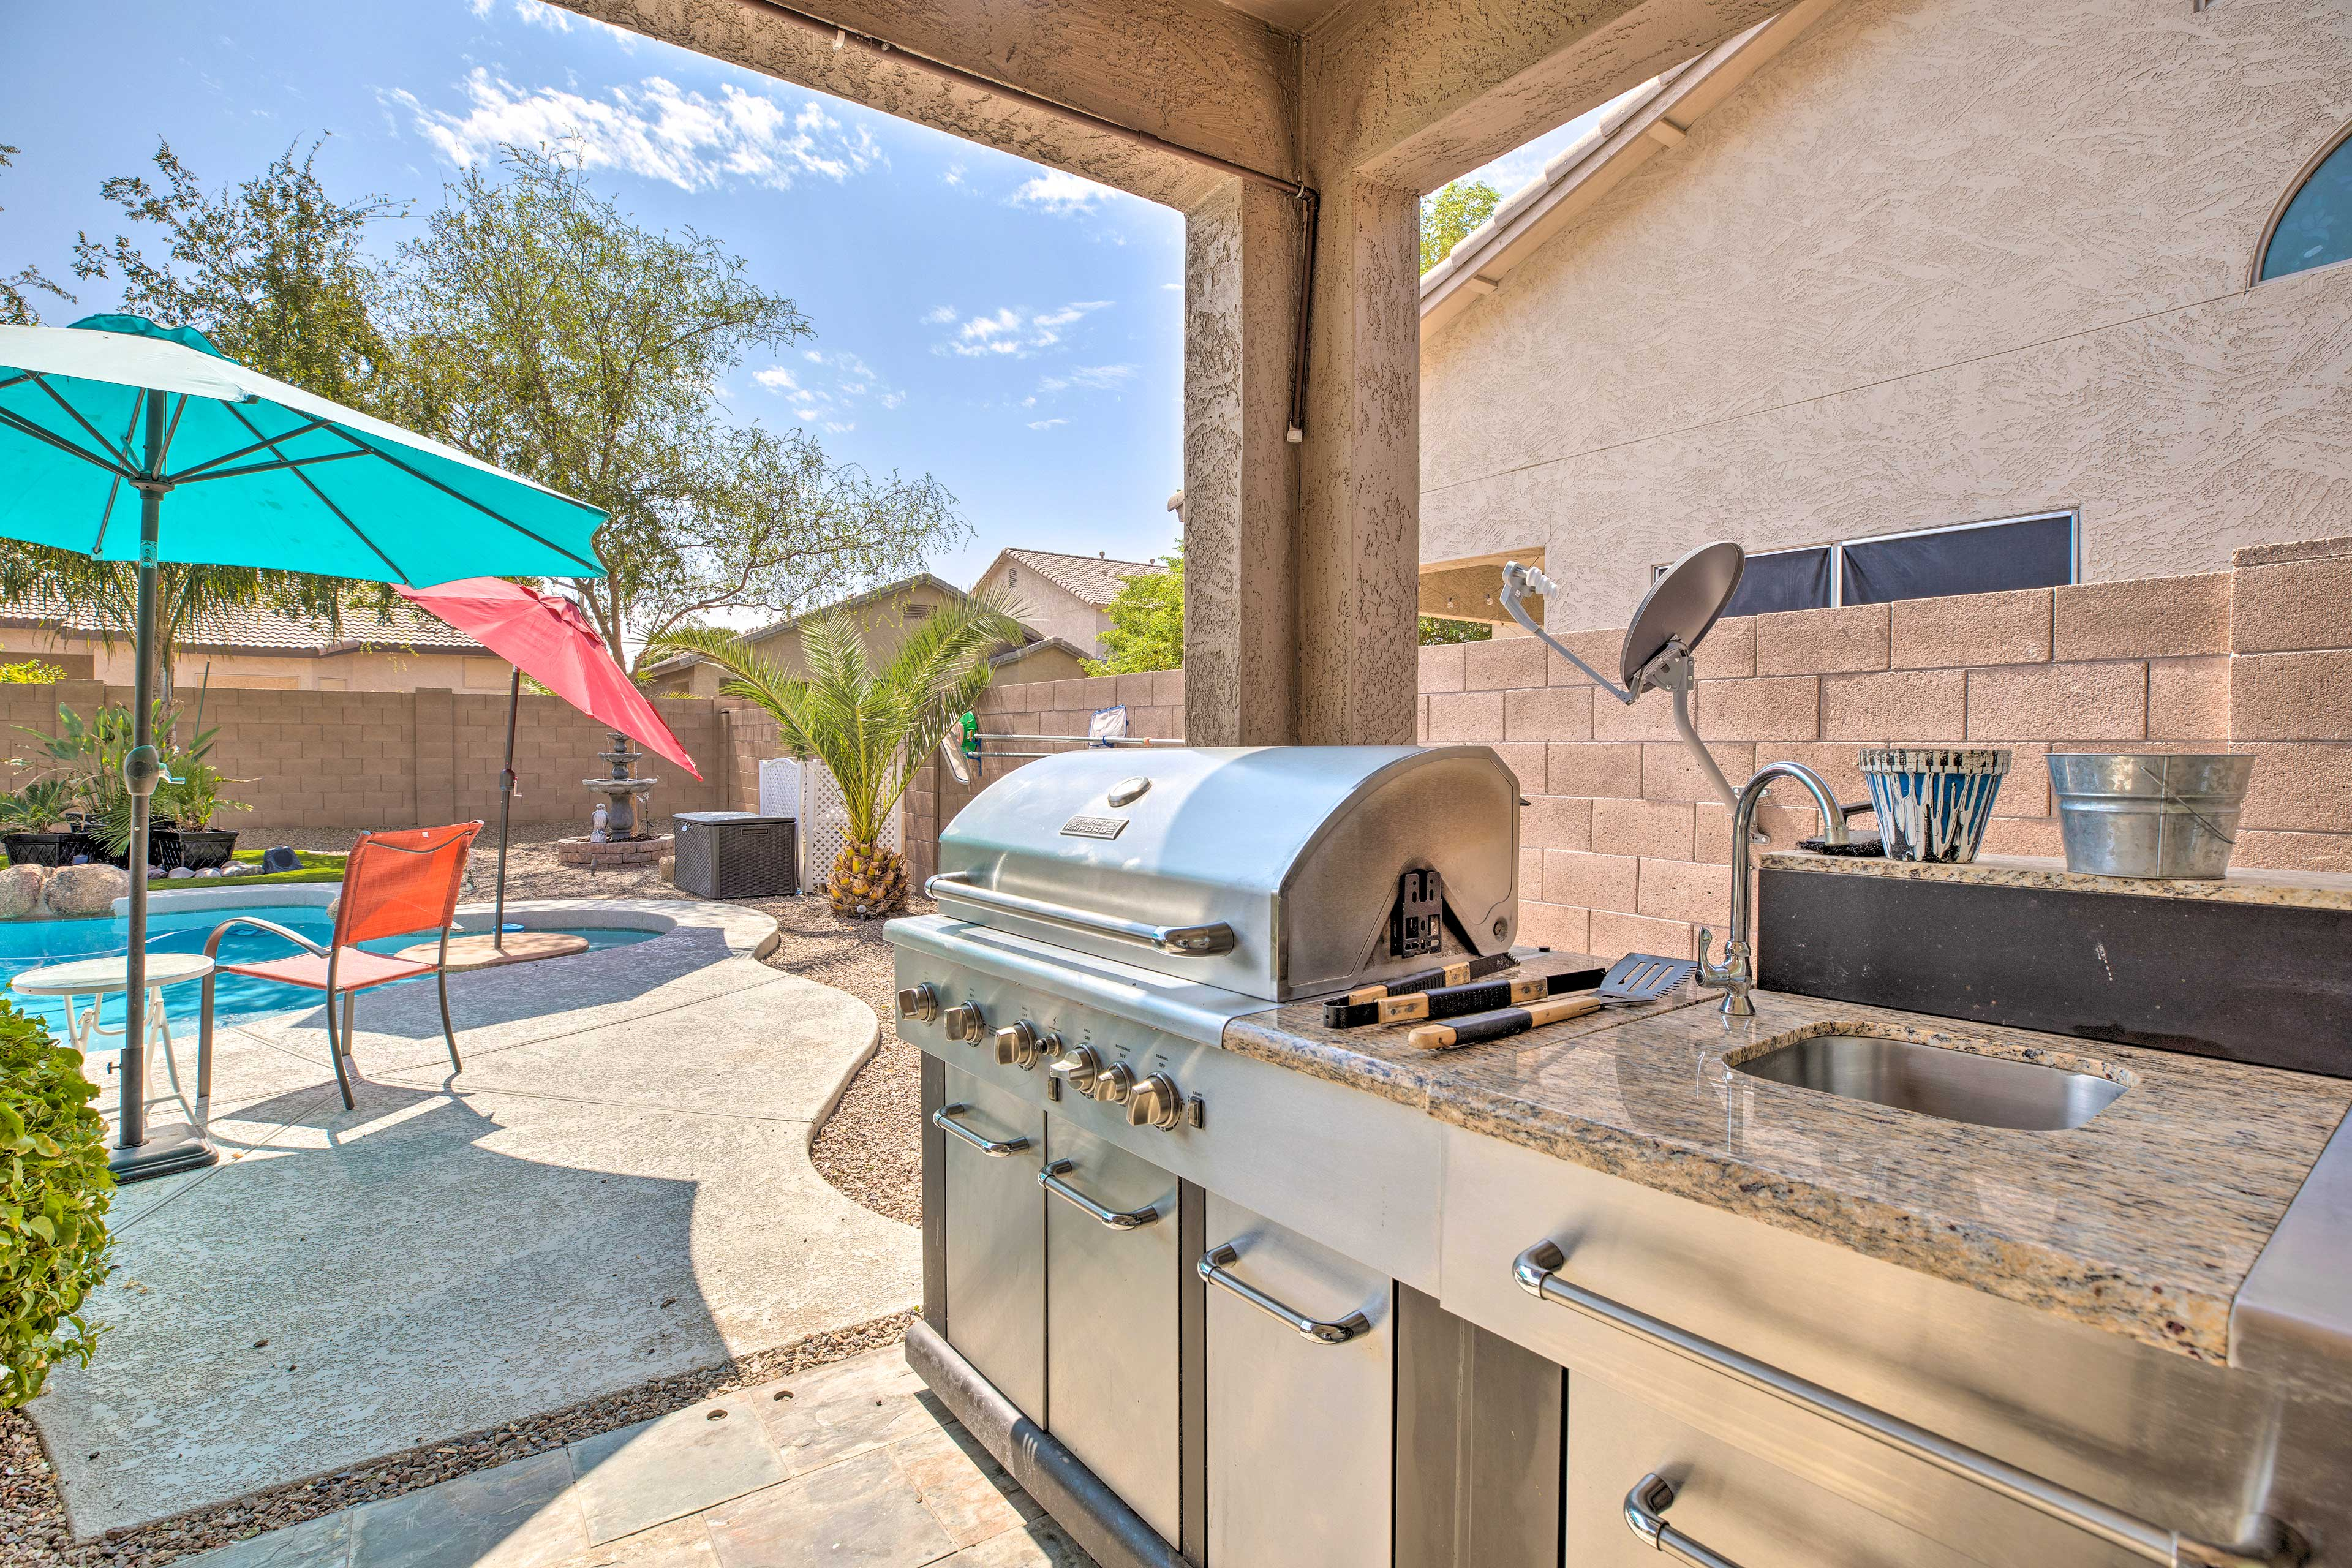 Take full advantage of this gourmet gas grill!